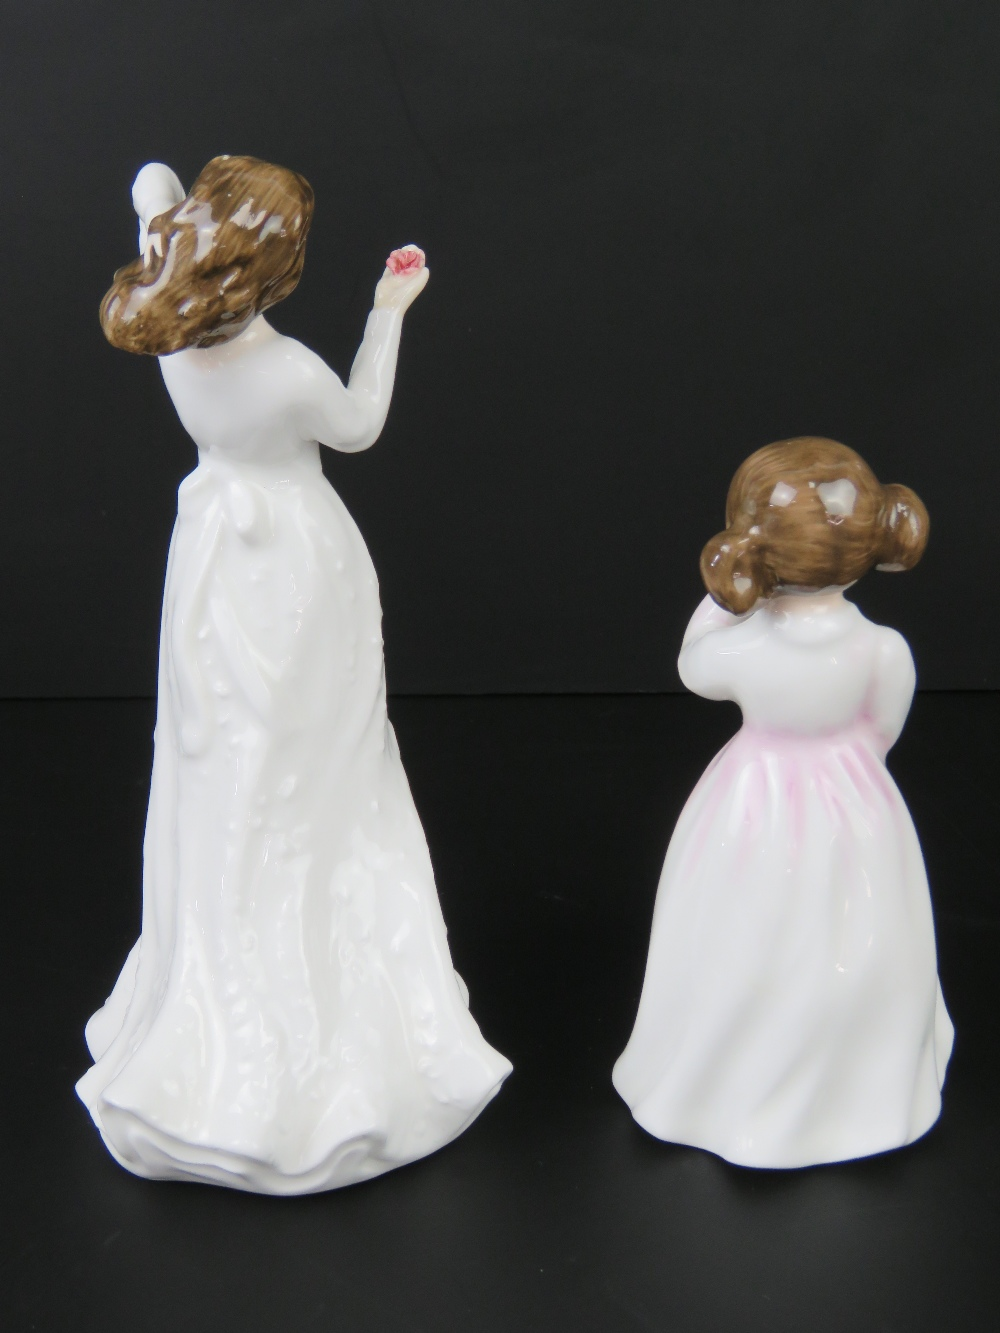 Two Royal Doulton figurines; HN3435 Daddys Girl, 11cm high, and HN3393 With Love, 15cm high. - Image 2 of 4